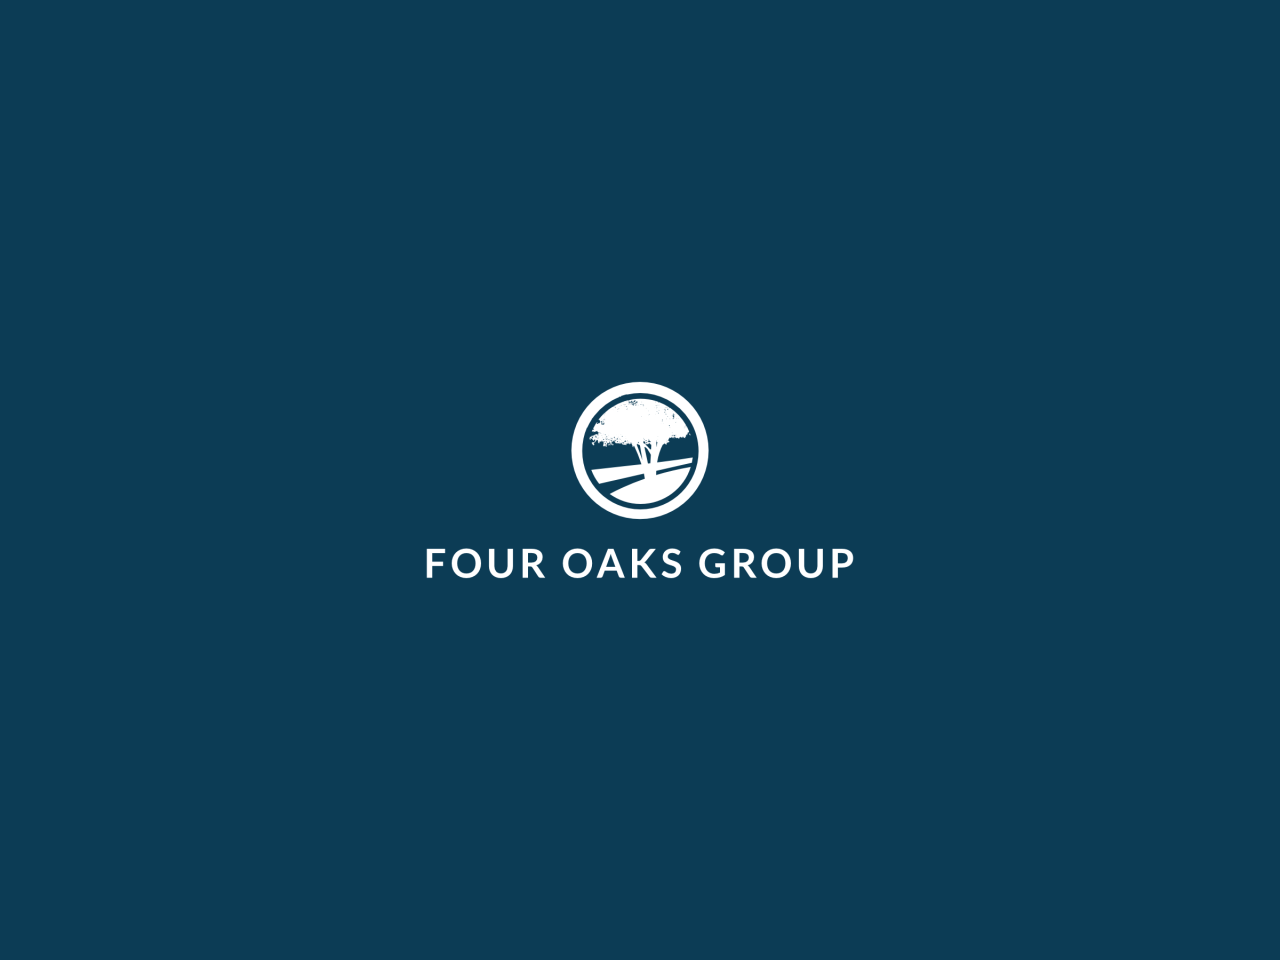 Four Oaks Group Brand A